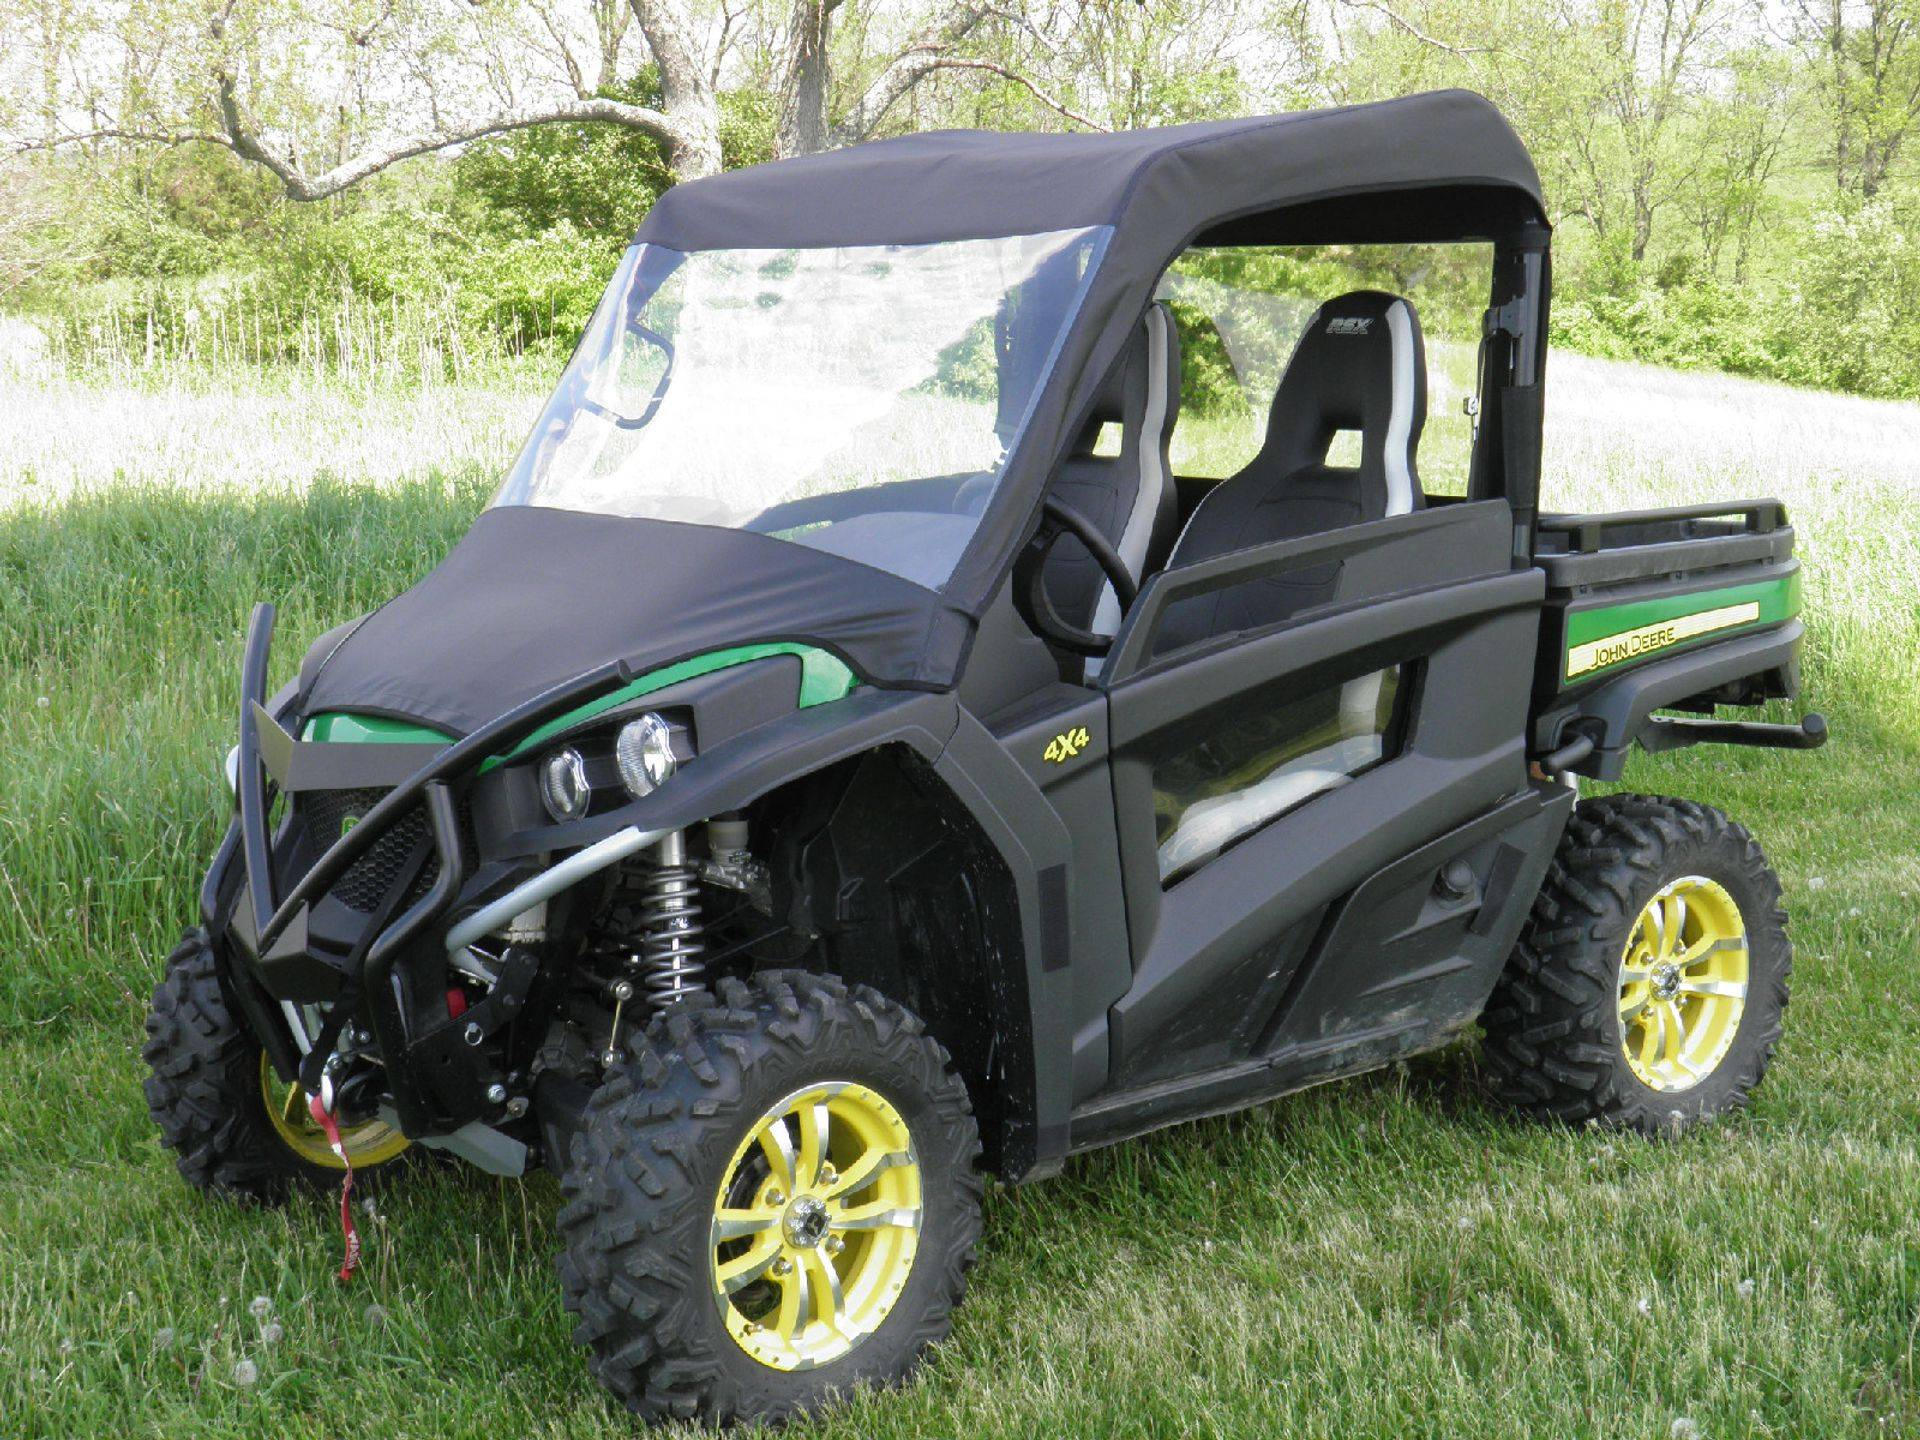 John Deere Gator 850i Summer Cab with a Vinyl Windshield